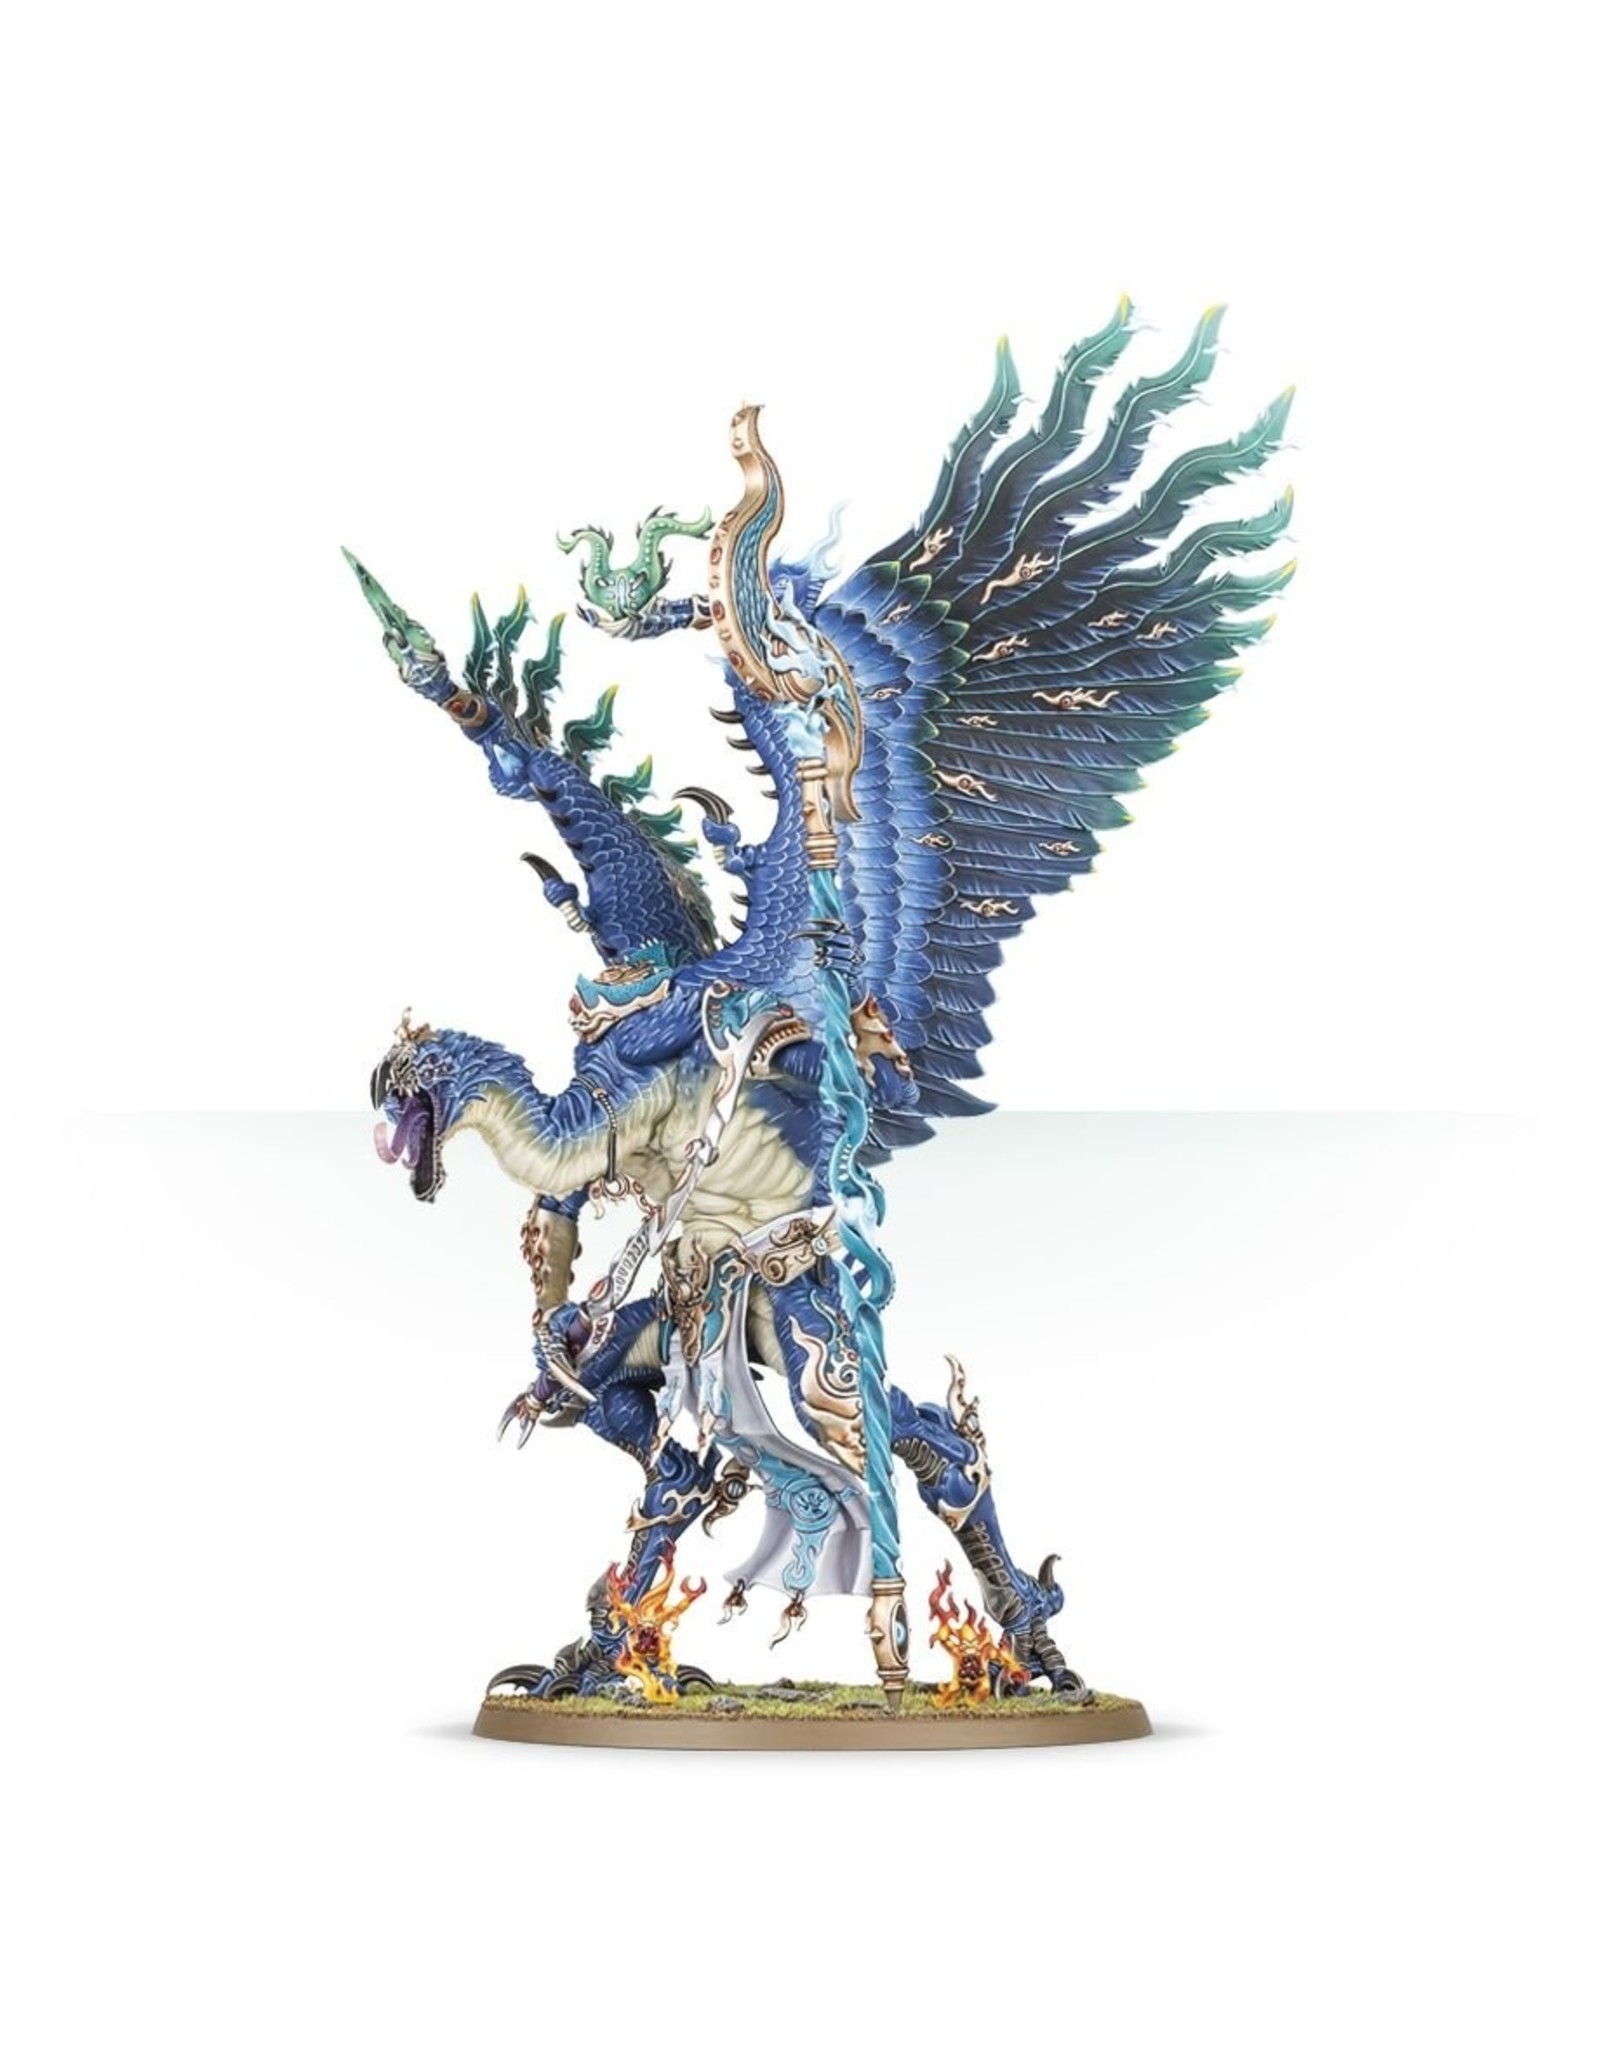 Games Workshop Daemons of Tzeentch: Lord of Change